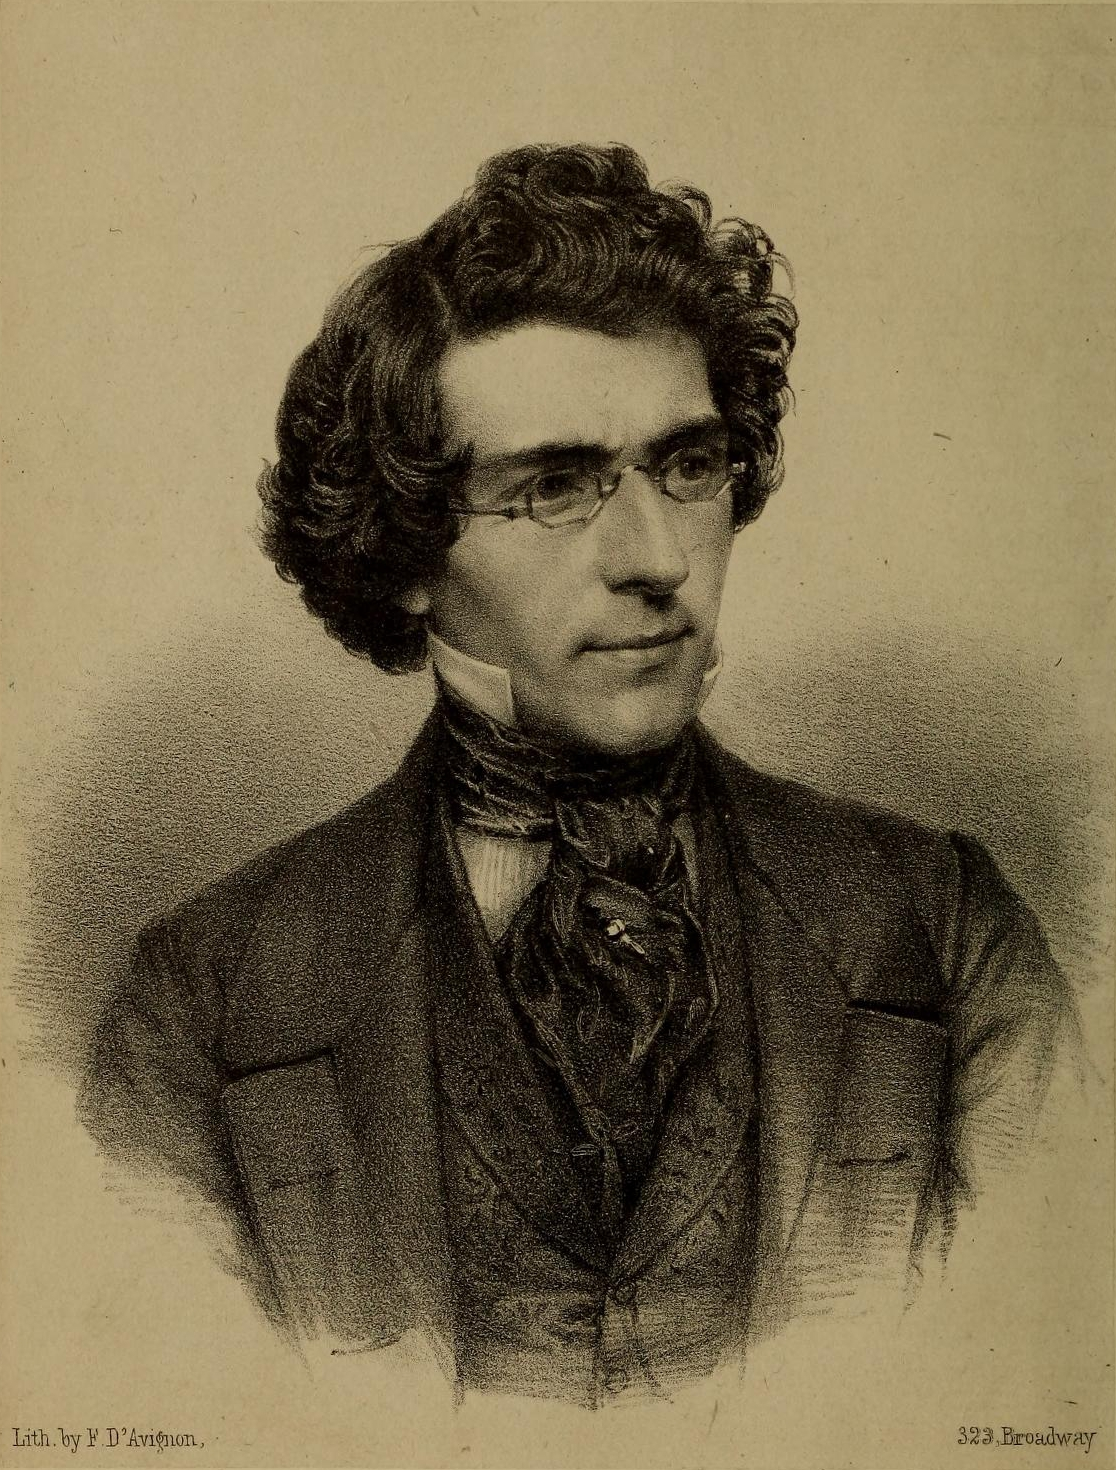 A lithograph of Civil War photographer Mathew Brady